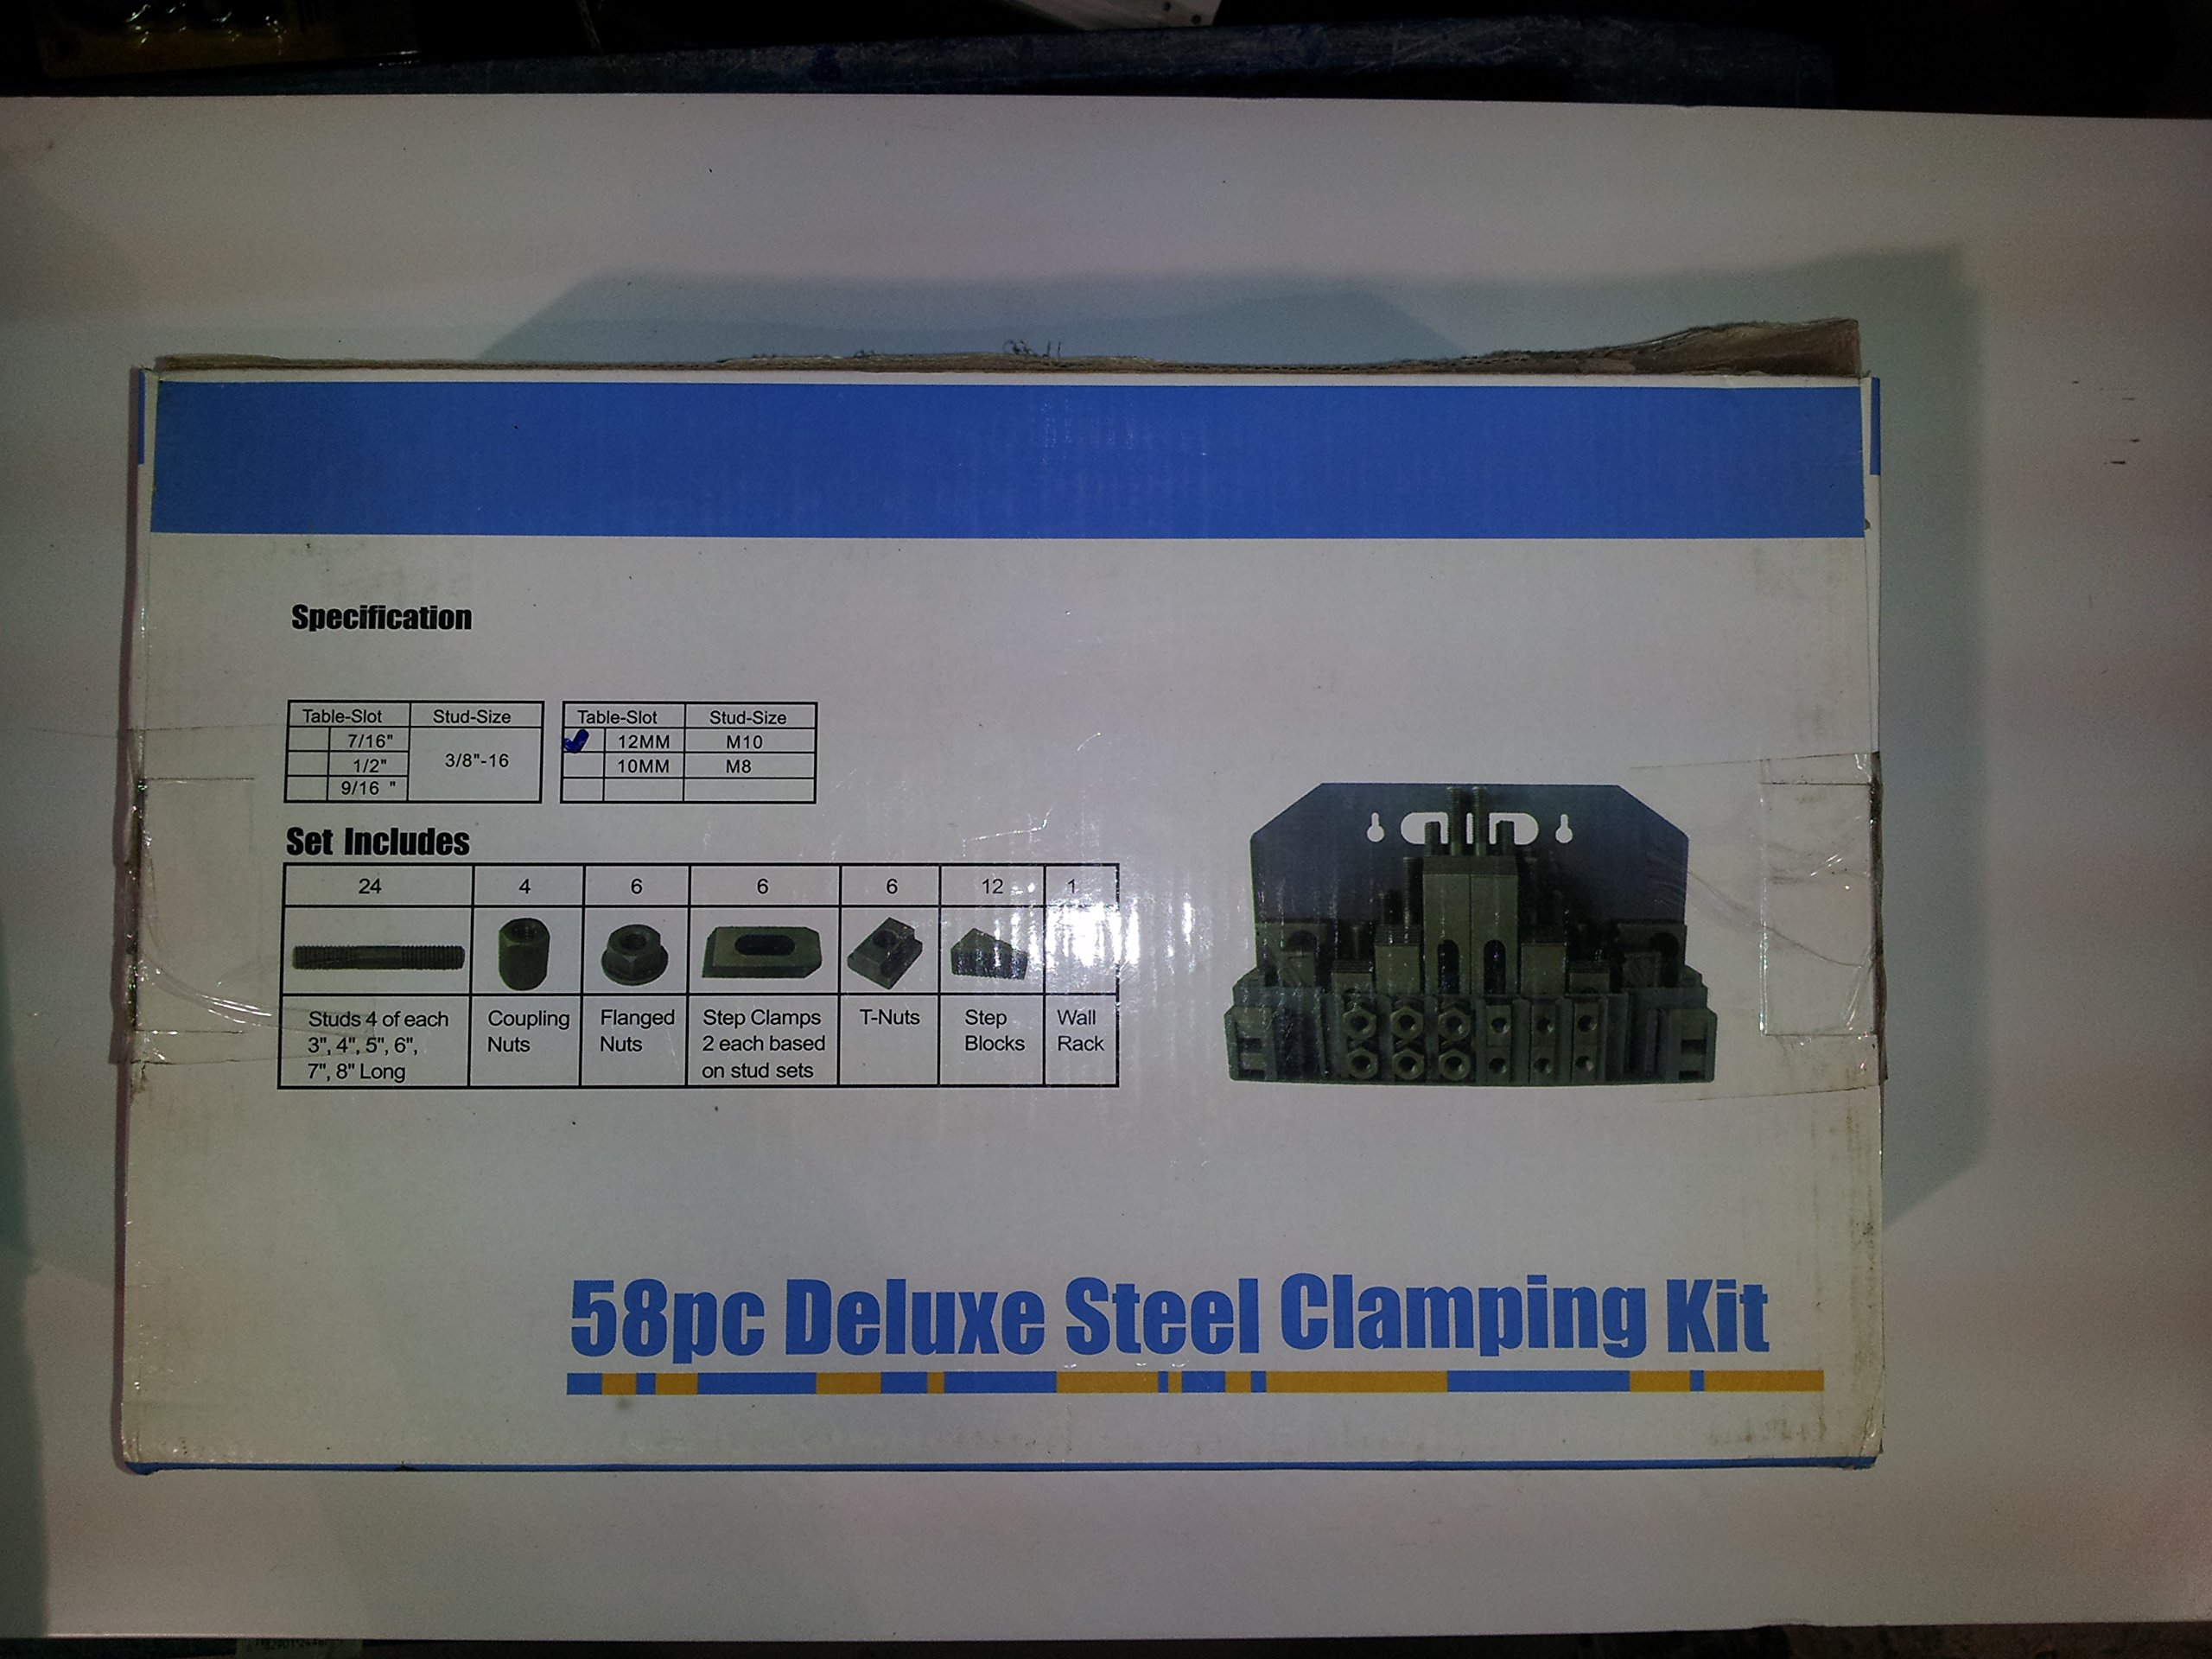 58 Pcs Deluxe Steel Clamping Kits 5/8 T-slots , 1/2'' Bolt Size , 24 Studs, 6 Step Block Pairs, 6 T-nuts,6 Flange Nuts,Step Blocks,Step Clamps and Mounting Rack